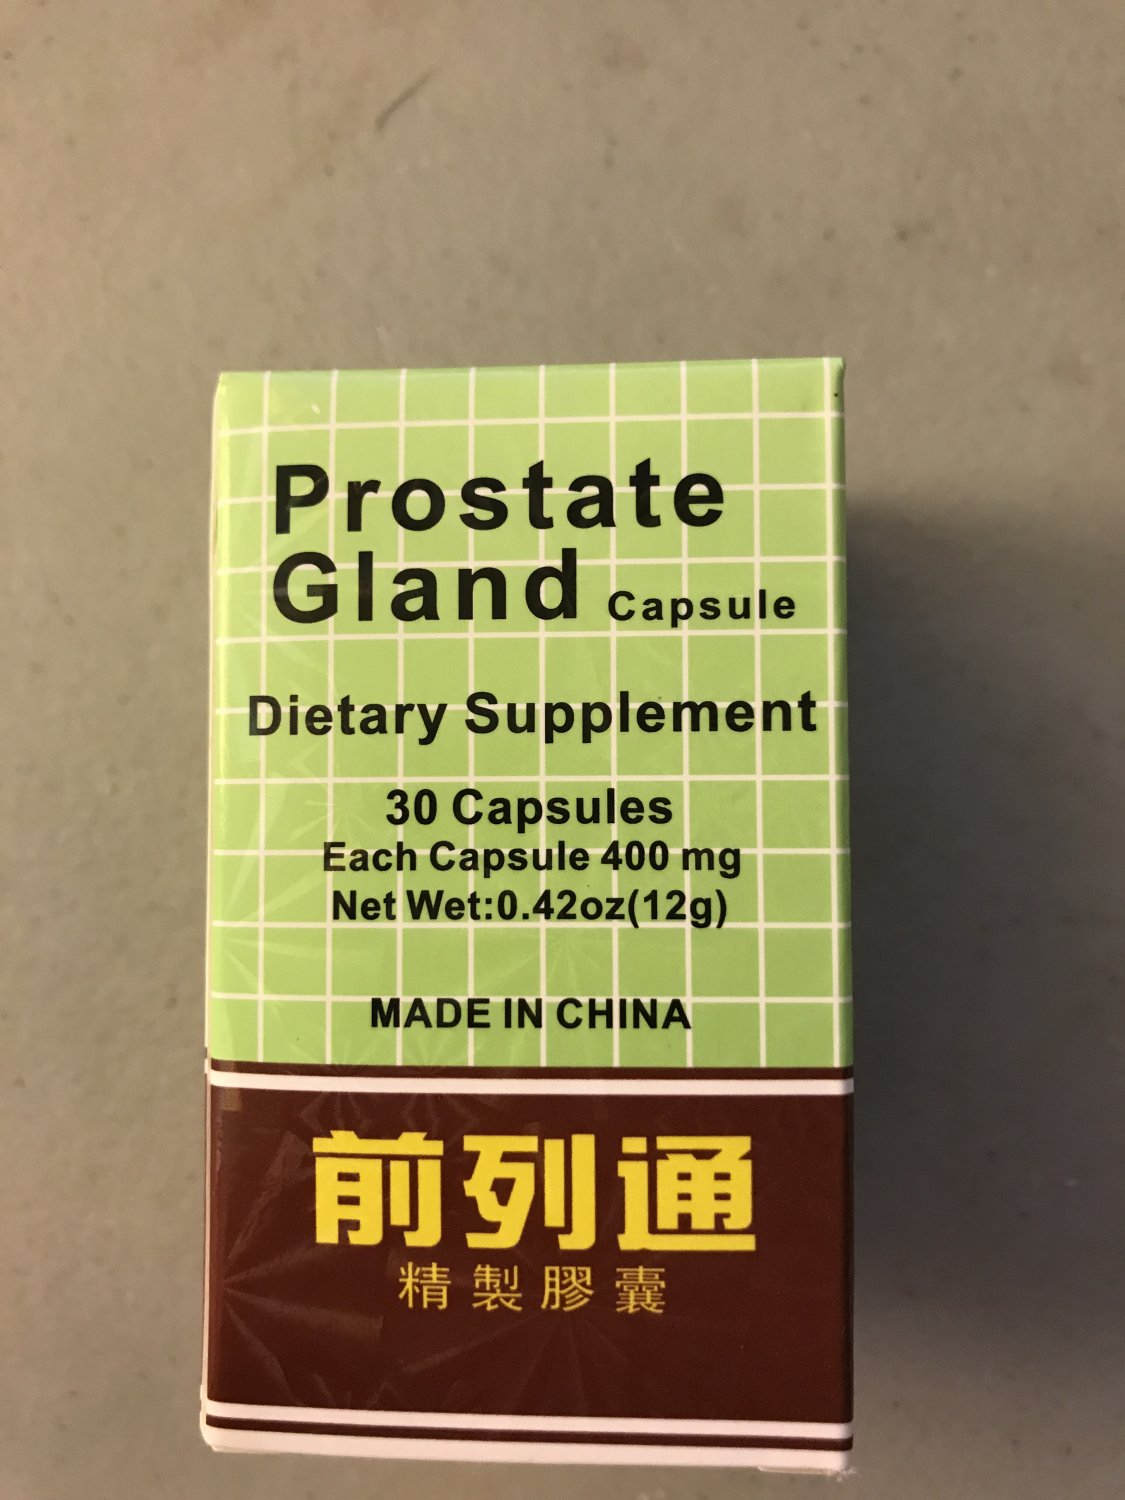 prostate gland capsule dietary supplement 90 capsules